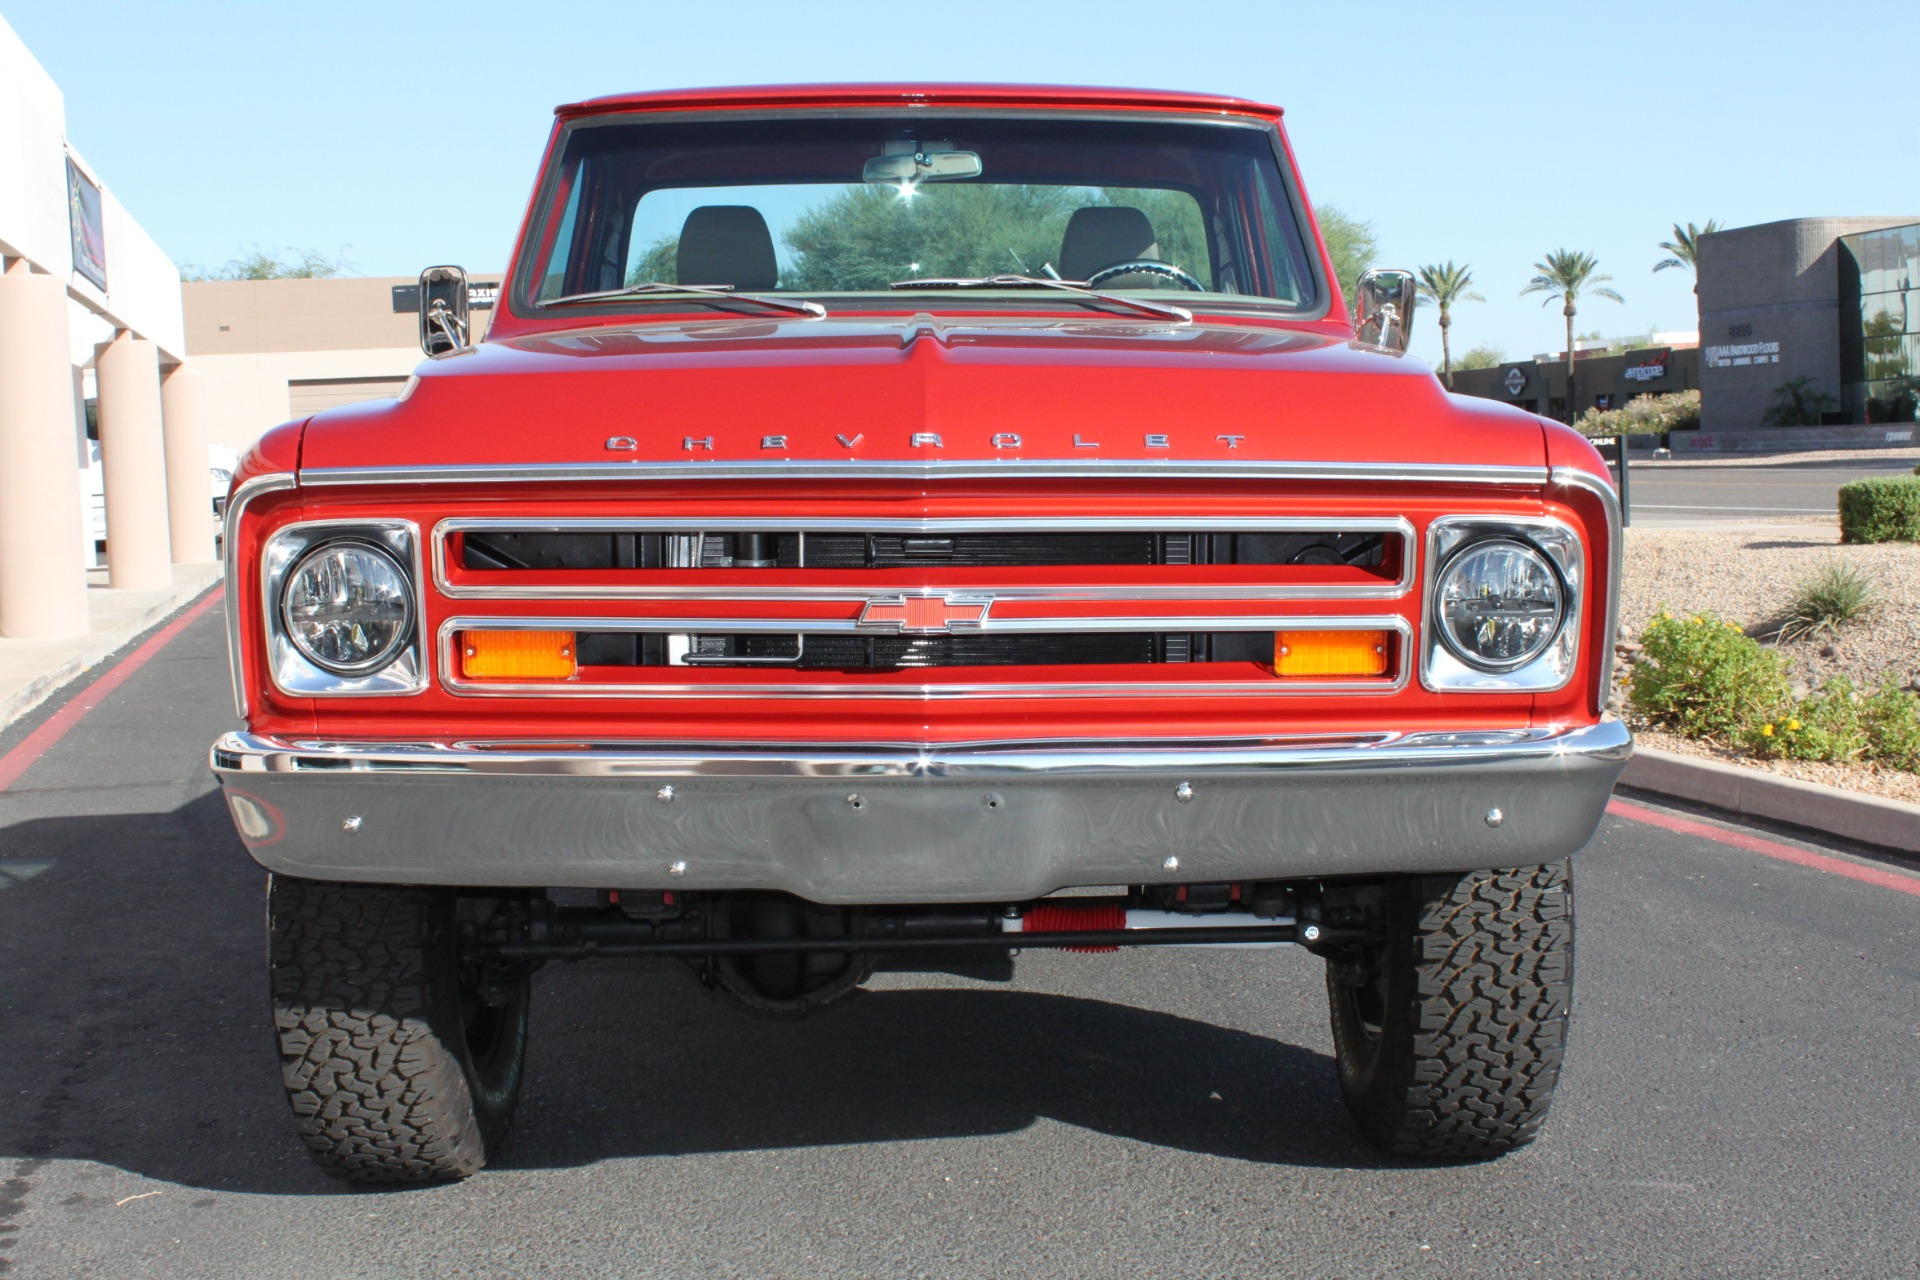 Used-1968-Chevrolet-K10-(C10)-1/2-Ton-Short-Bed-4X4-Grand-Cherokee